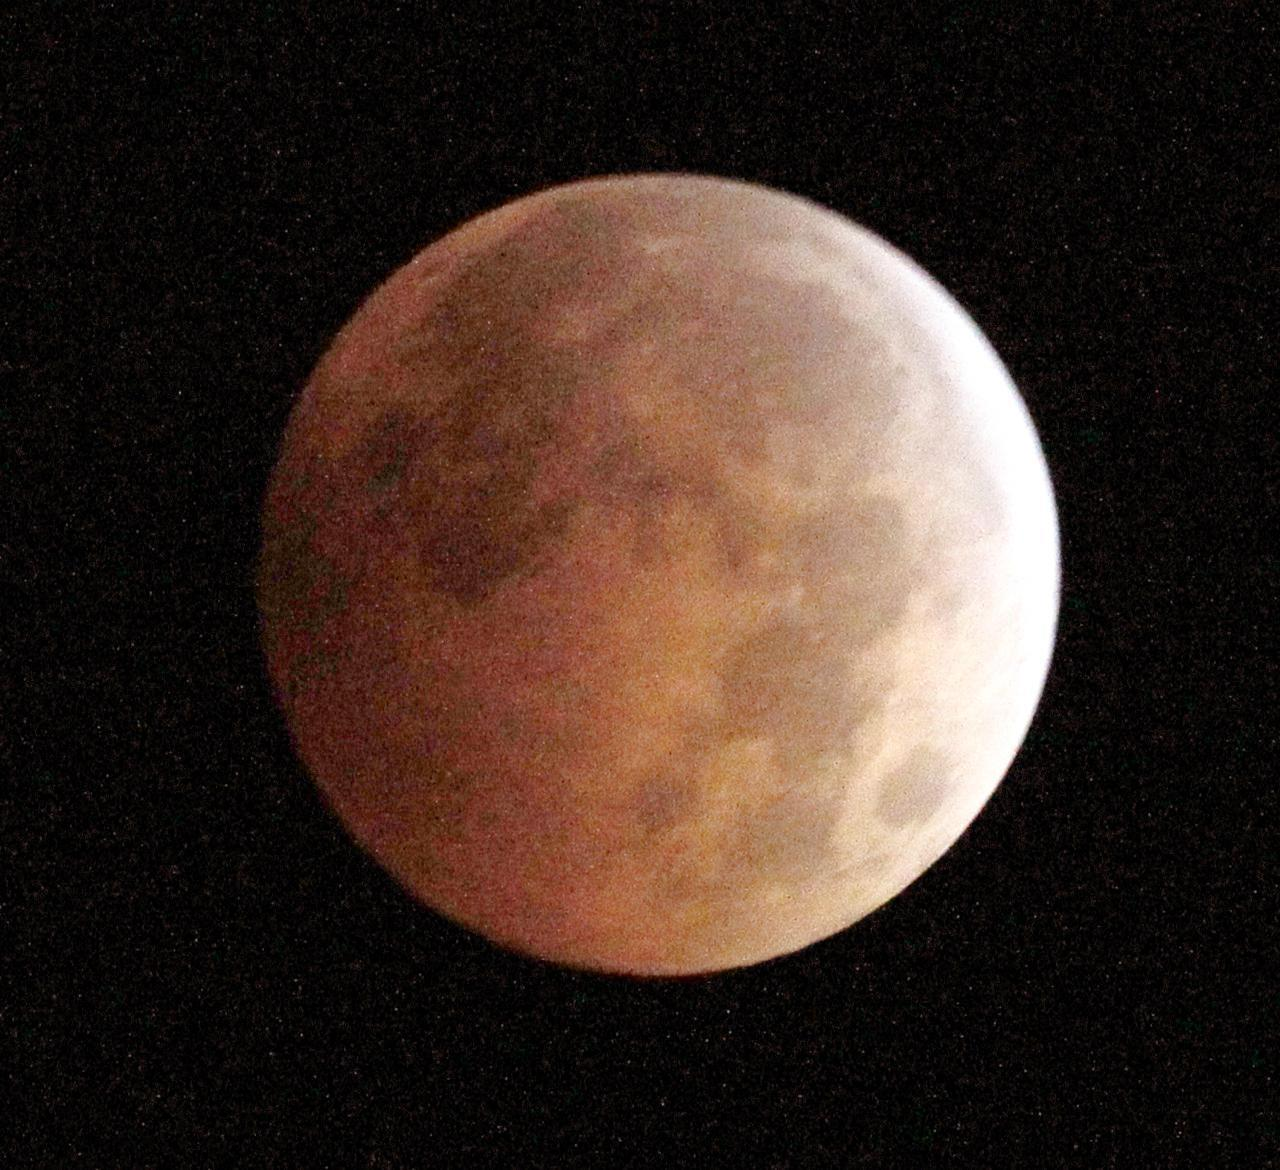 Rare Celestial Event: Best Places to See the Super Blood Moon